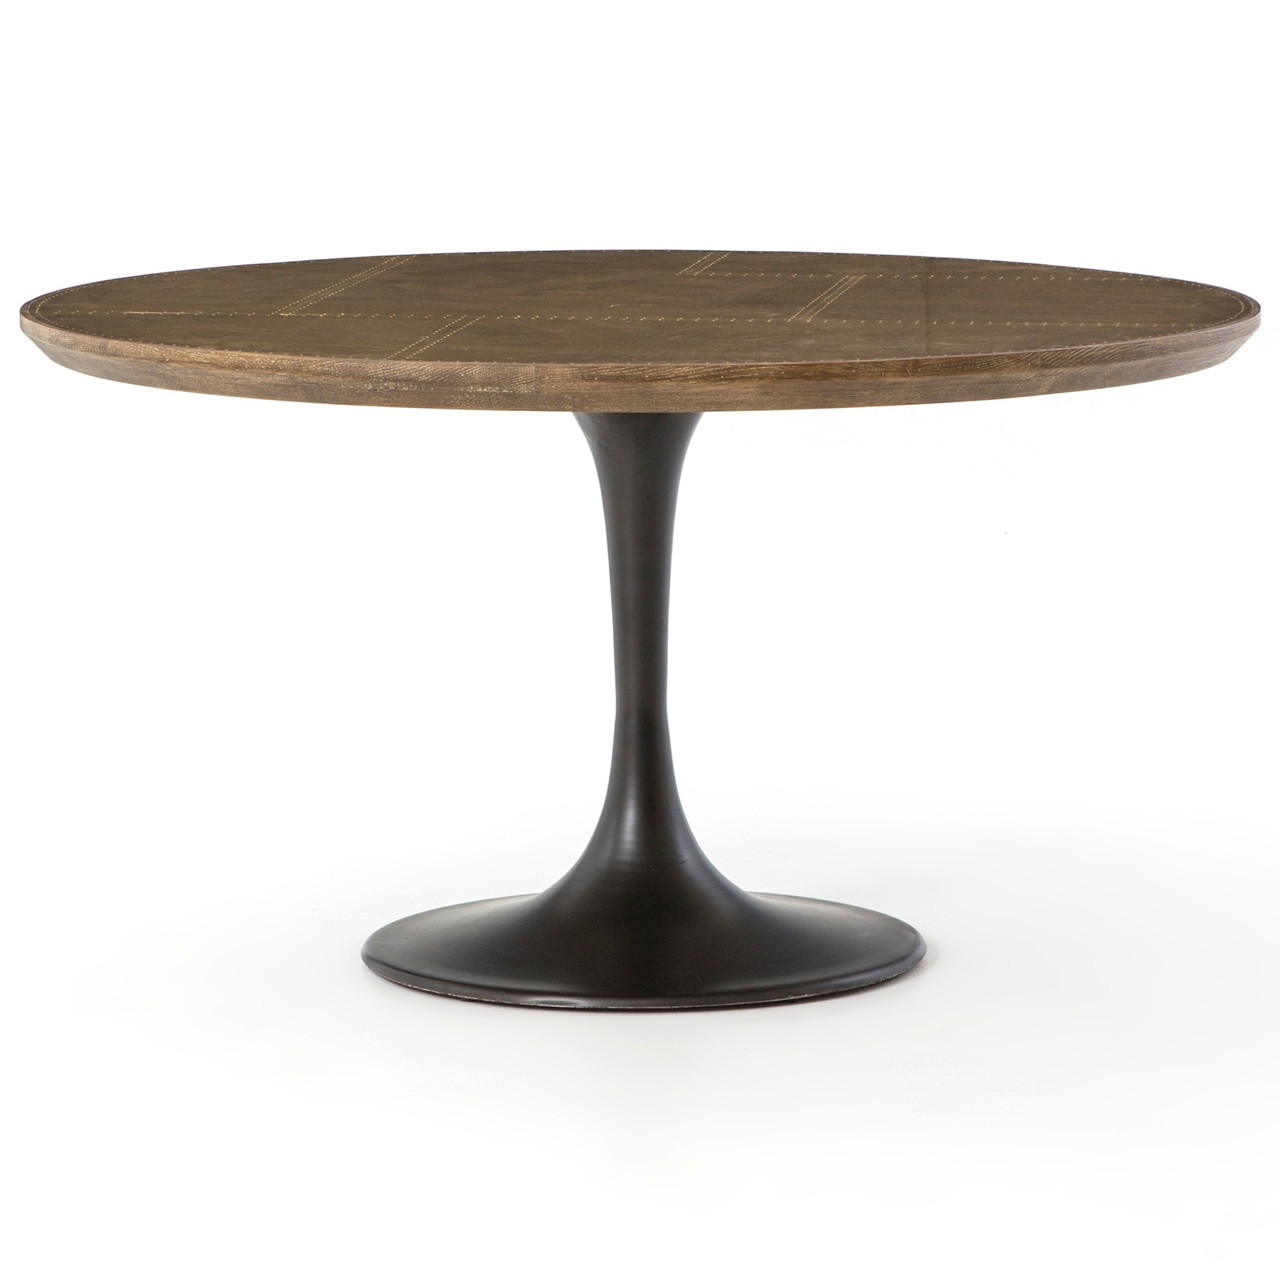 more photos a5880 b91f7 Aero Tulip Industrial Brass Clad Top Round Dining Table 55